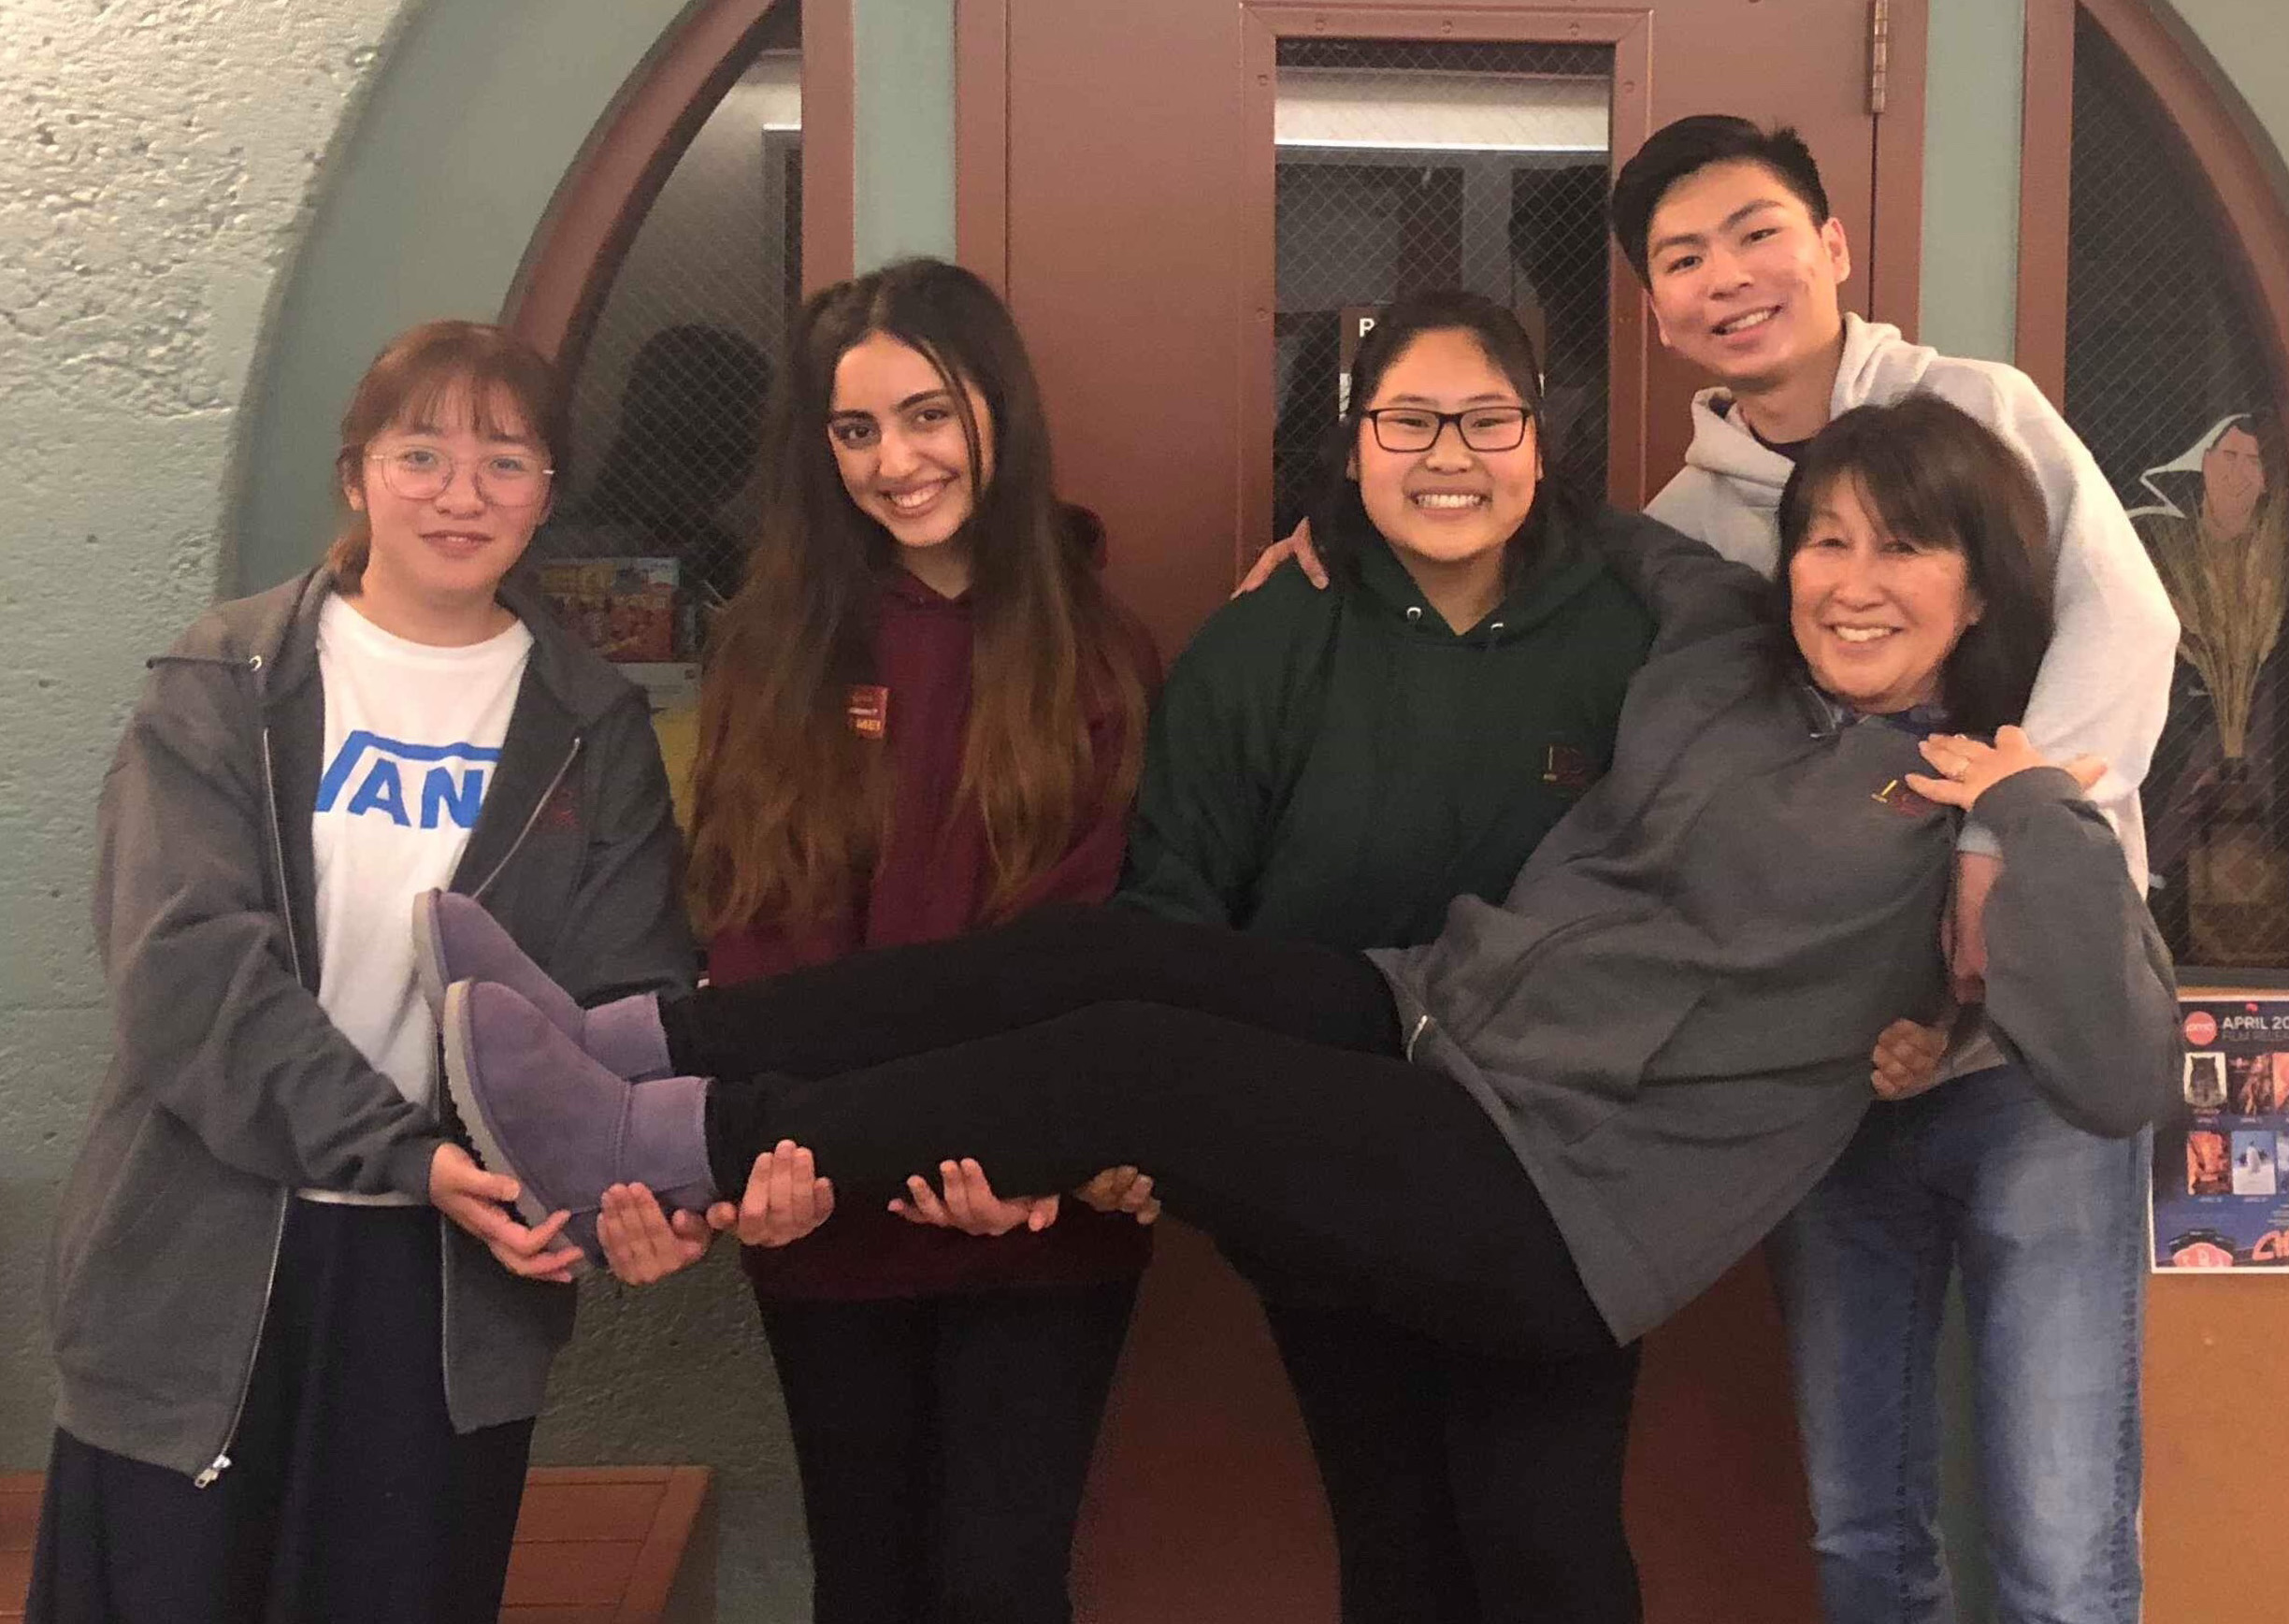 Picture of the 2019-2020 ICC Officers and Advisor; Back from left to right - Dolores Liu, Romina Iranmanesh, Amy Hua, Yuichi Asai, Front - La Donna Yumori-Kaku